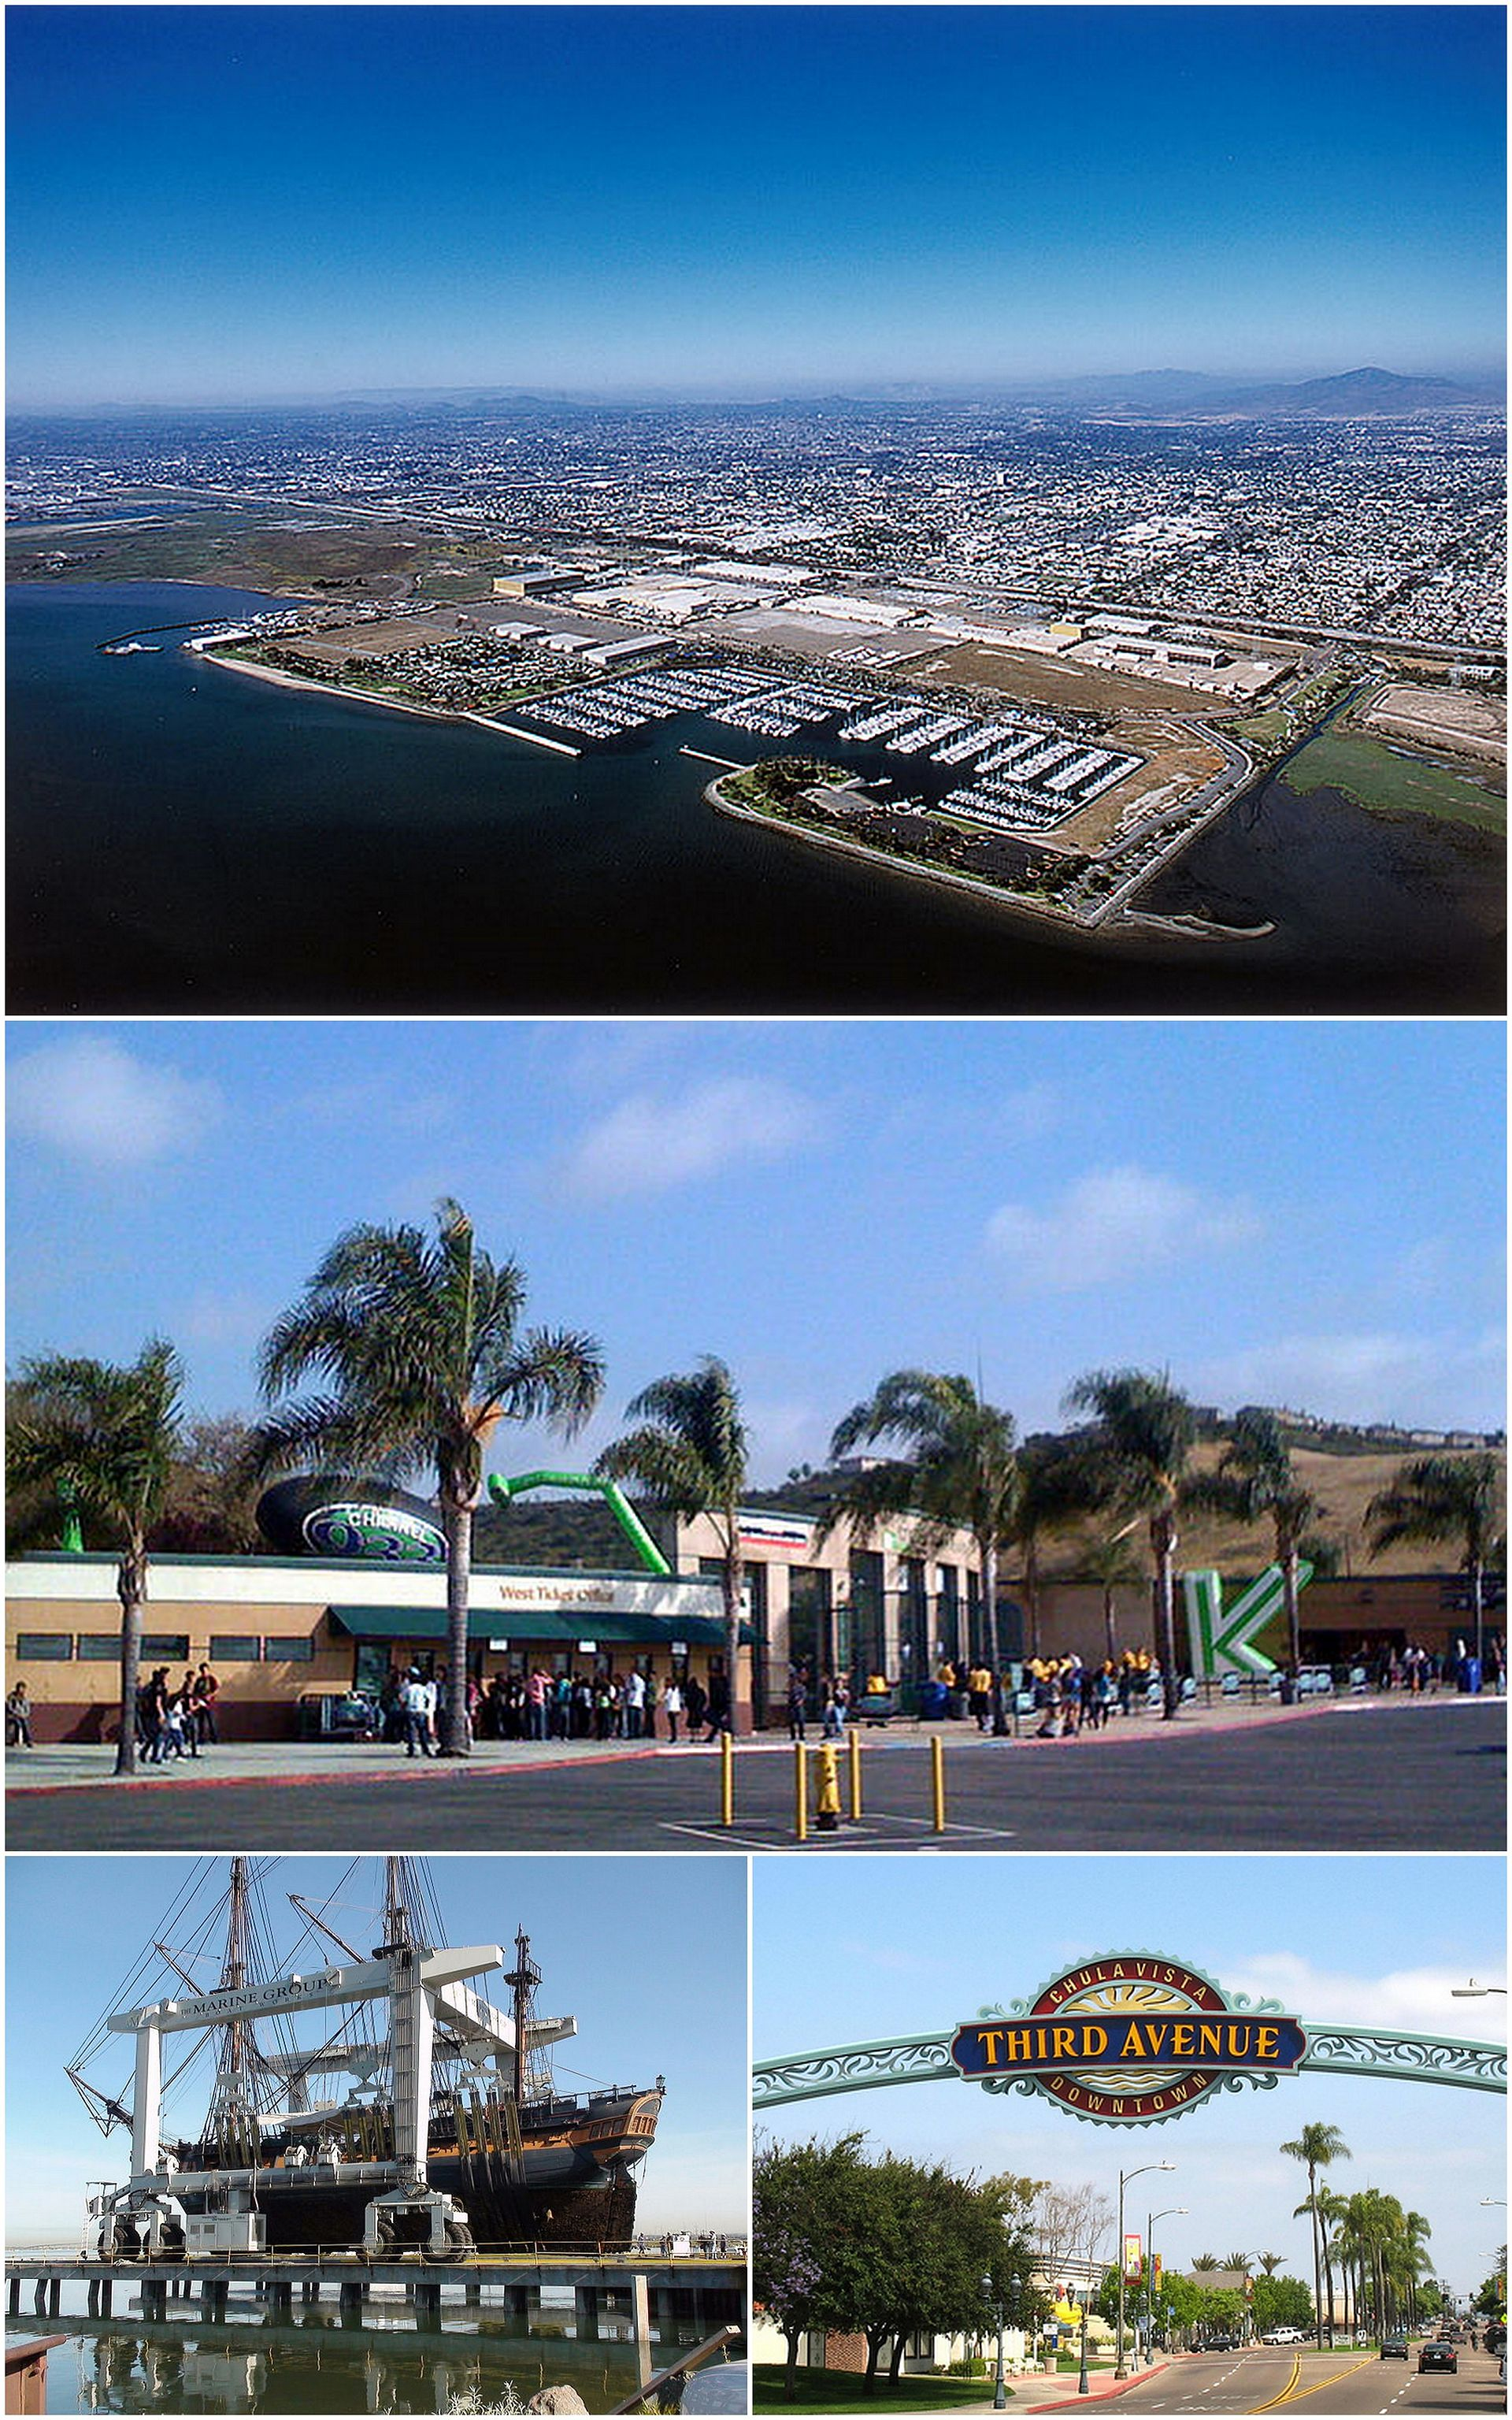 Chula Vista, California - Wikipedia